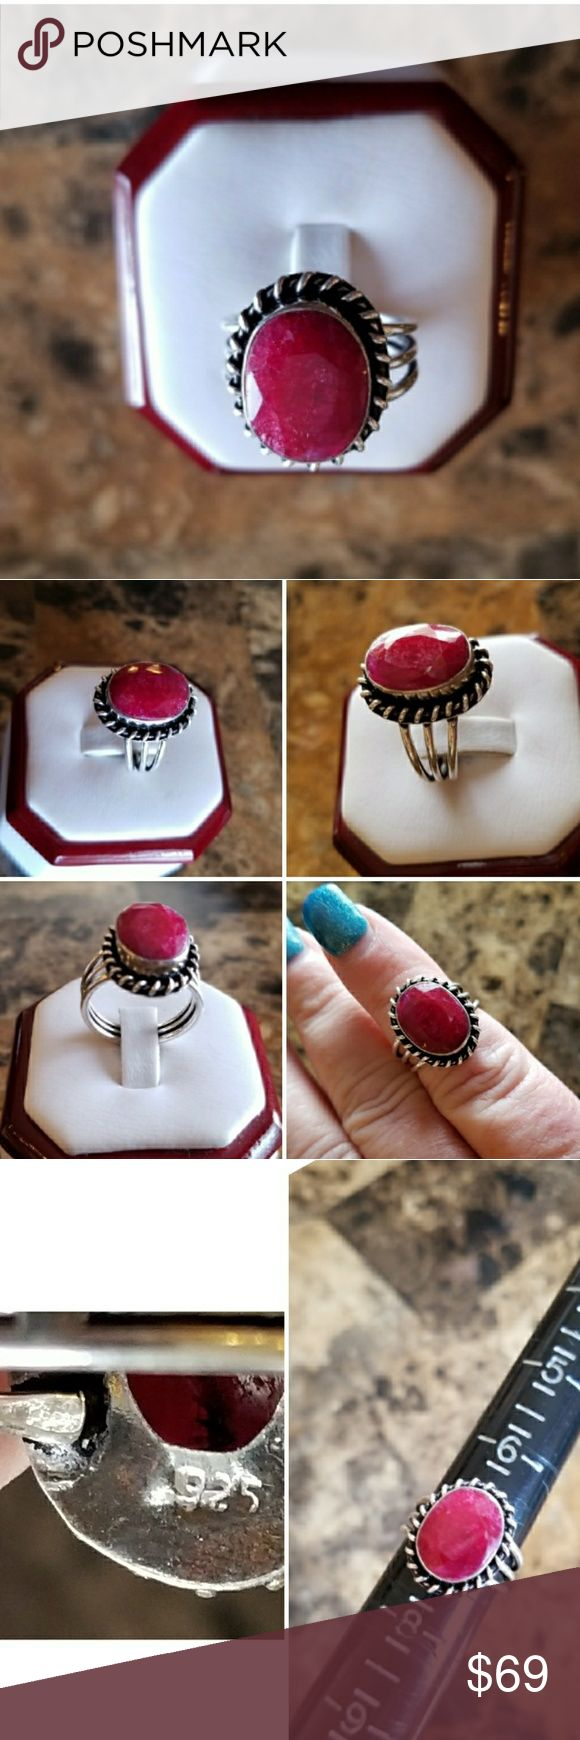 Genuine 6ct Natural Ruby Ring Size 7 Bold, Beautiful Natural Pink Ruby!!!  Set in 925 stamped Solid Sterling Silver. Please see all pictures for more detail and measurement. Brand New. Never Worn. WHOLESALE Prices Always! Jewelry Rings